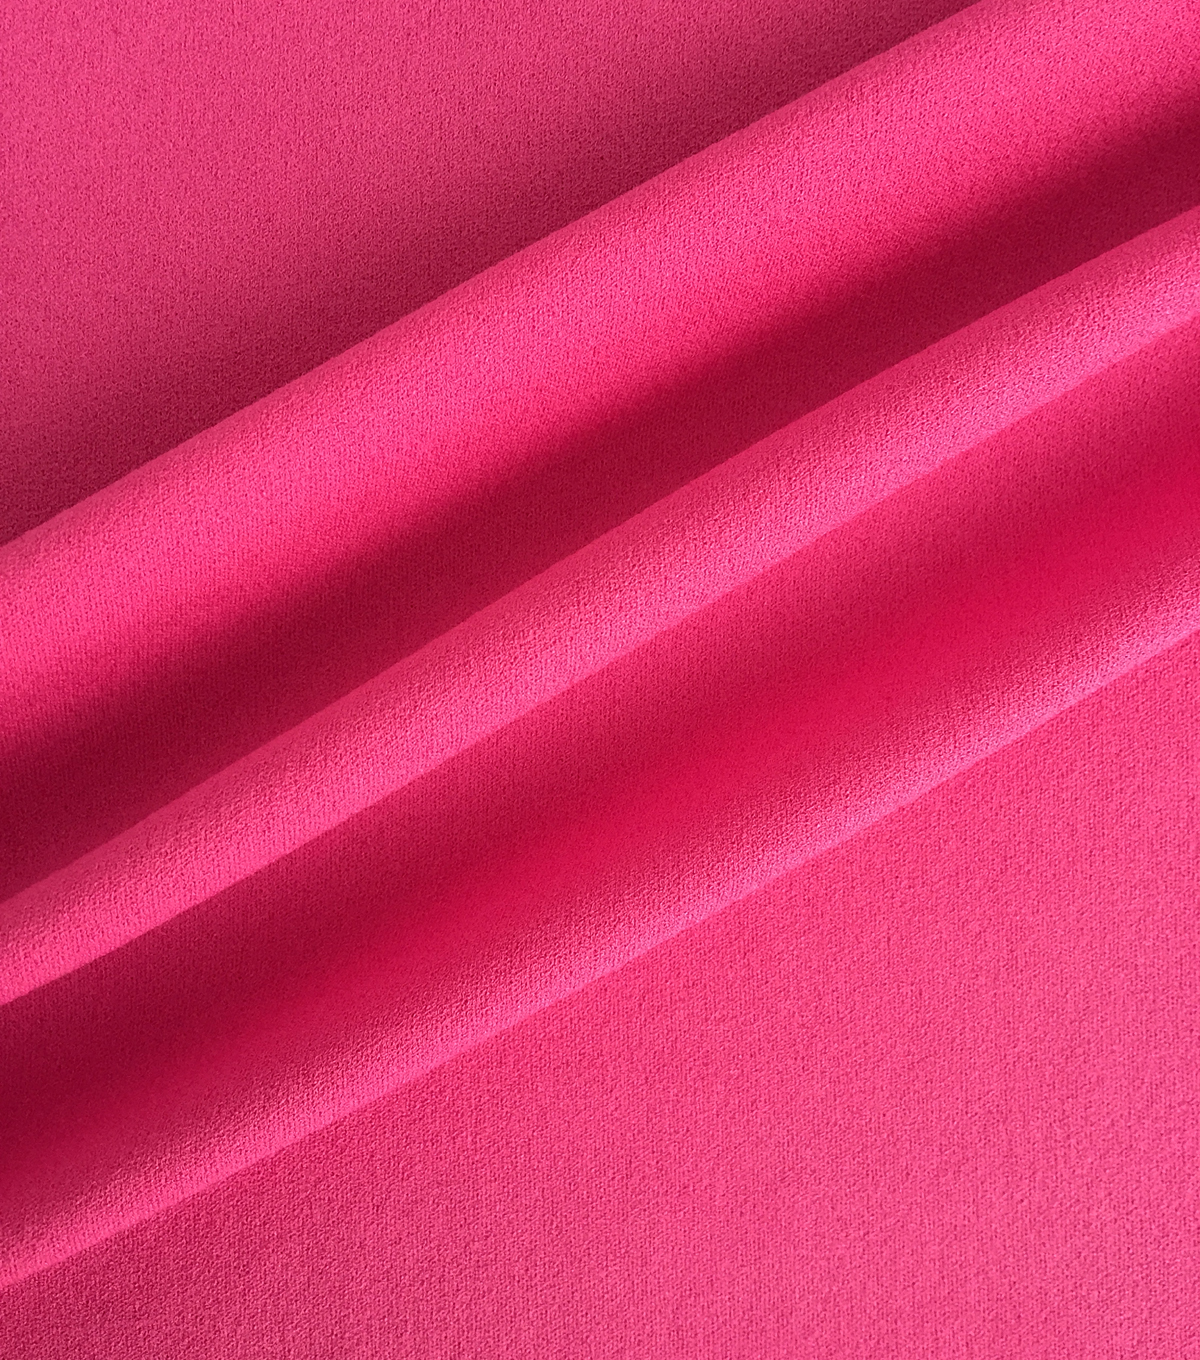 Spring Sheen Crepe Knit Fabric 57\u0022-Solid Fuchsia